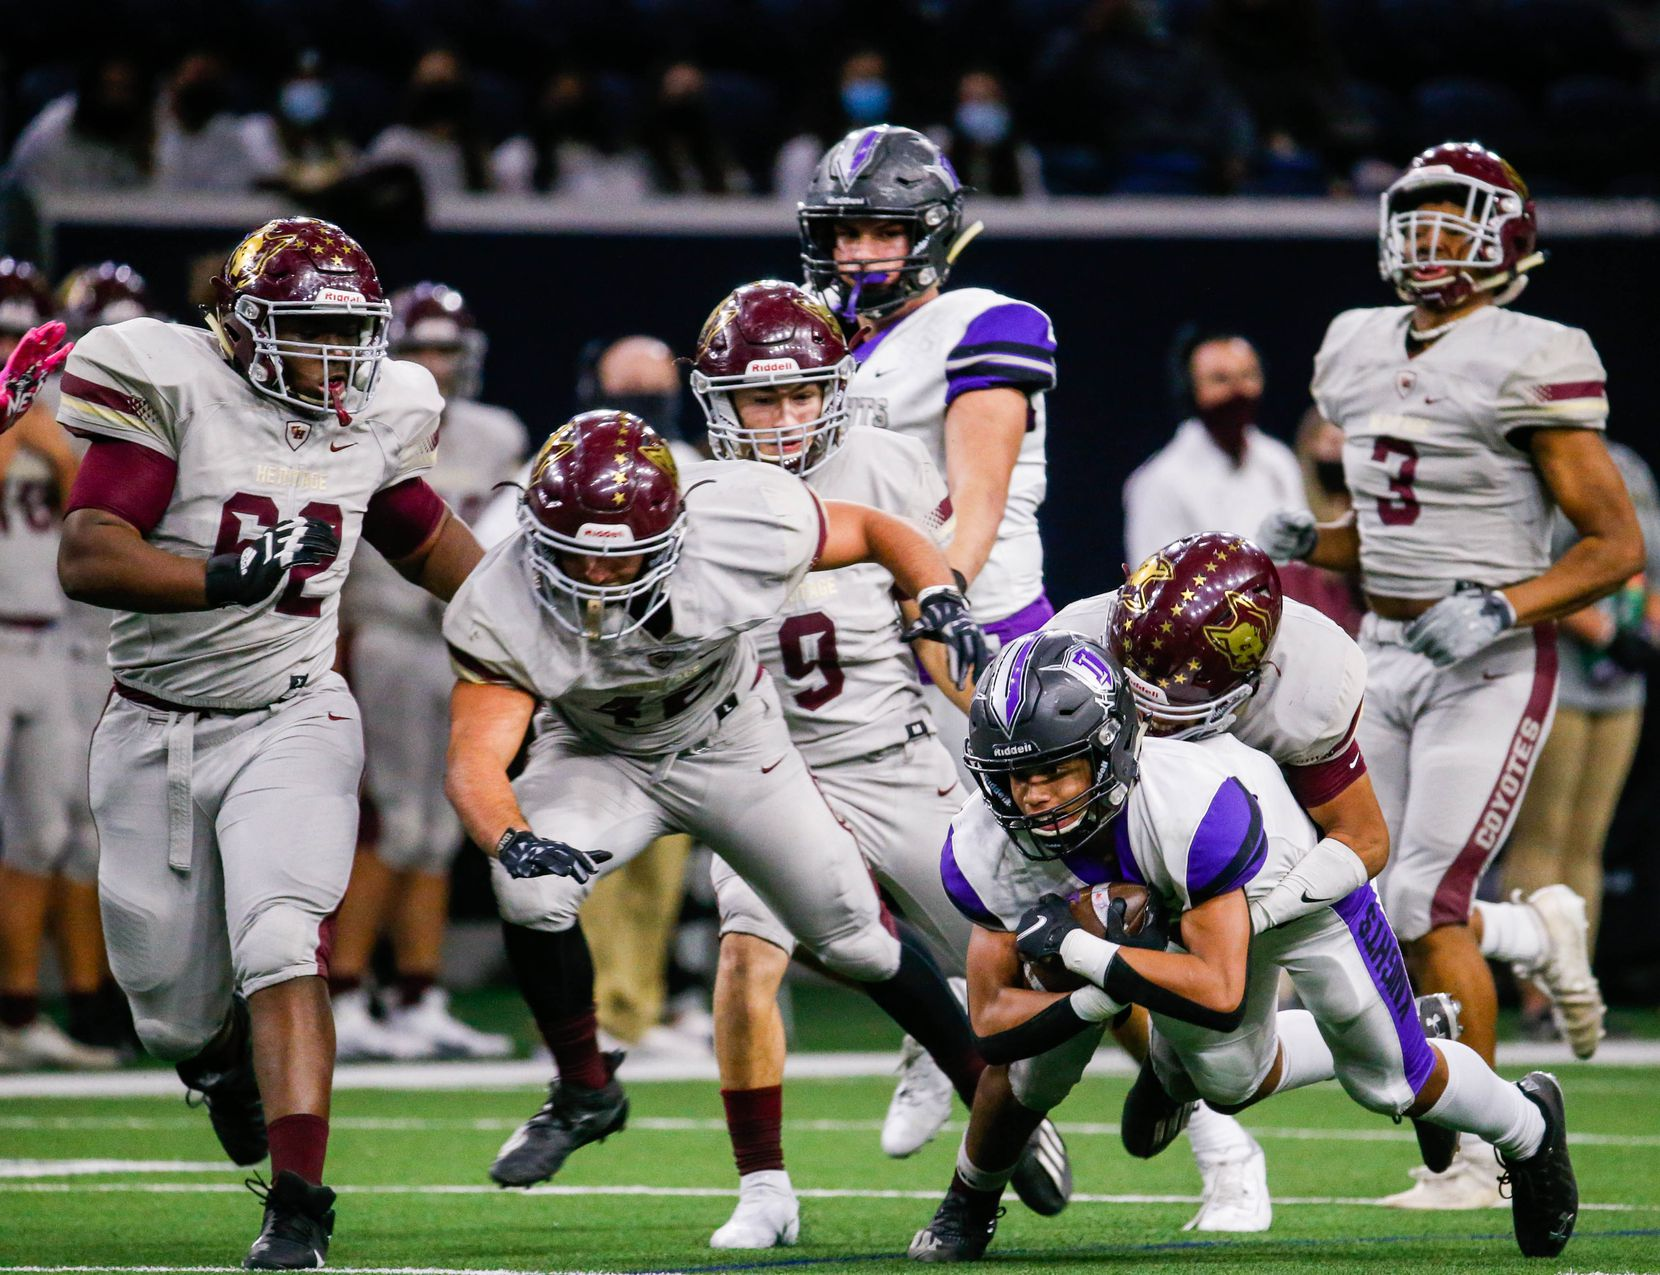 Frisco Independence Jordyn Tyson (4) is tackled by the Frisco Heritage's defense during the second half of a game at the Ford Center at the Star in Frisco on Thursday, Dec. 3, 2020. (Juan Figueroa/ The Dallas Morning News)